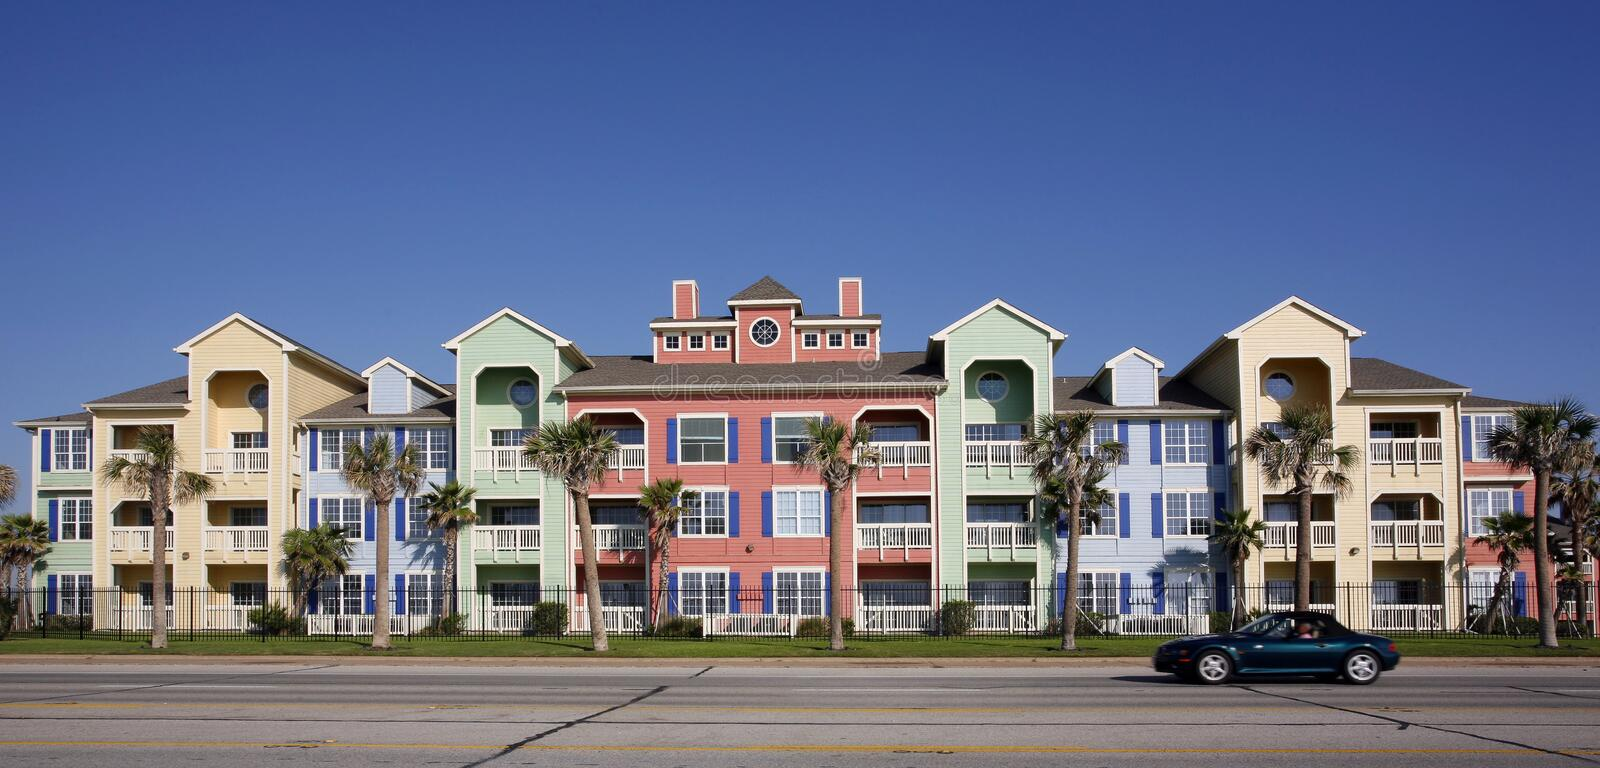 Colorful apartments (condo). Southern style with car running in front on blue sky background royalty free stock image